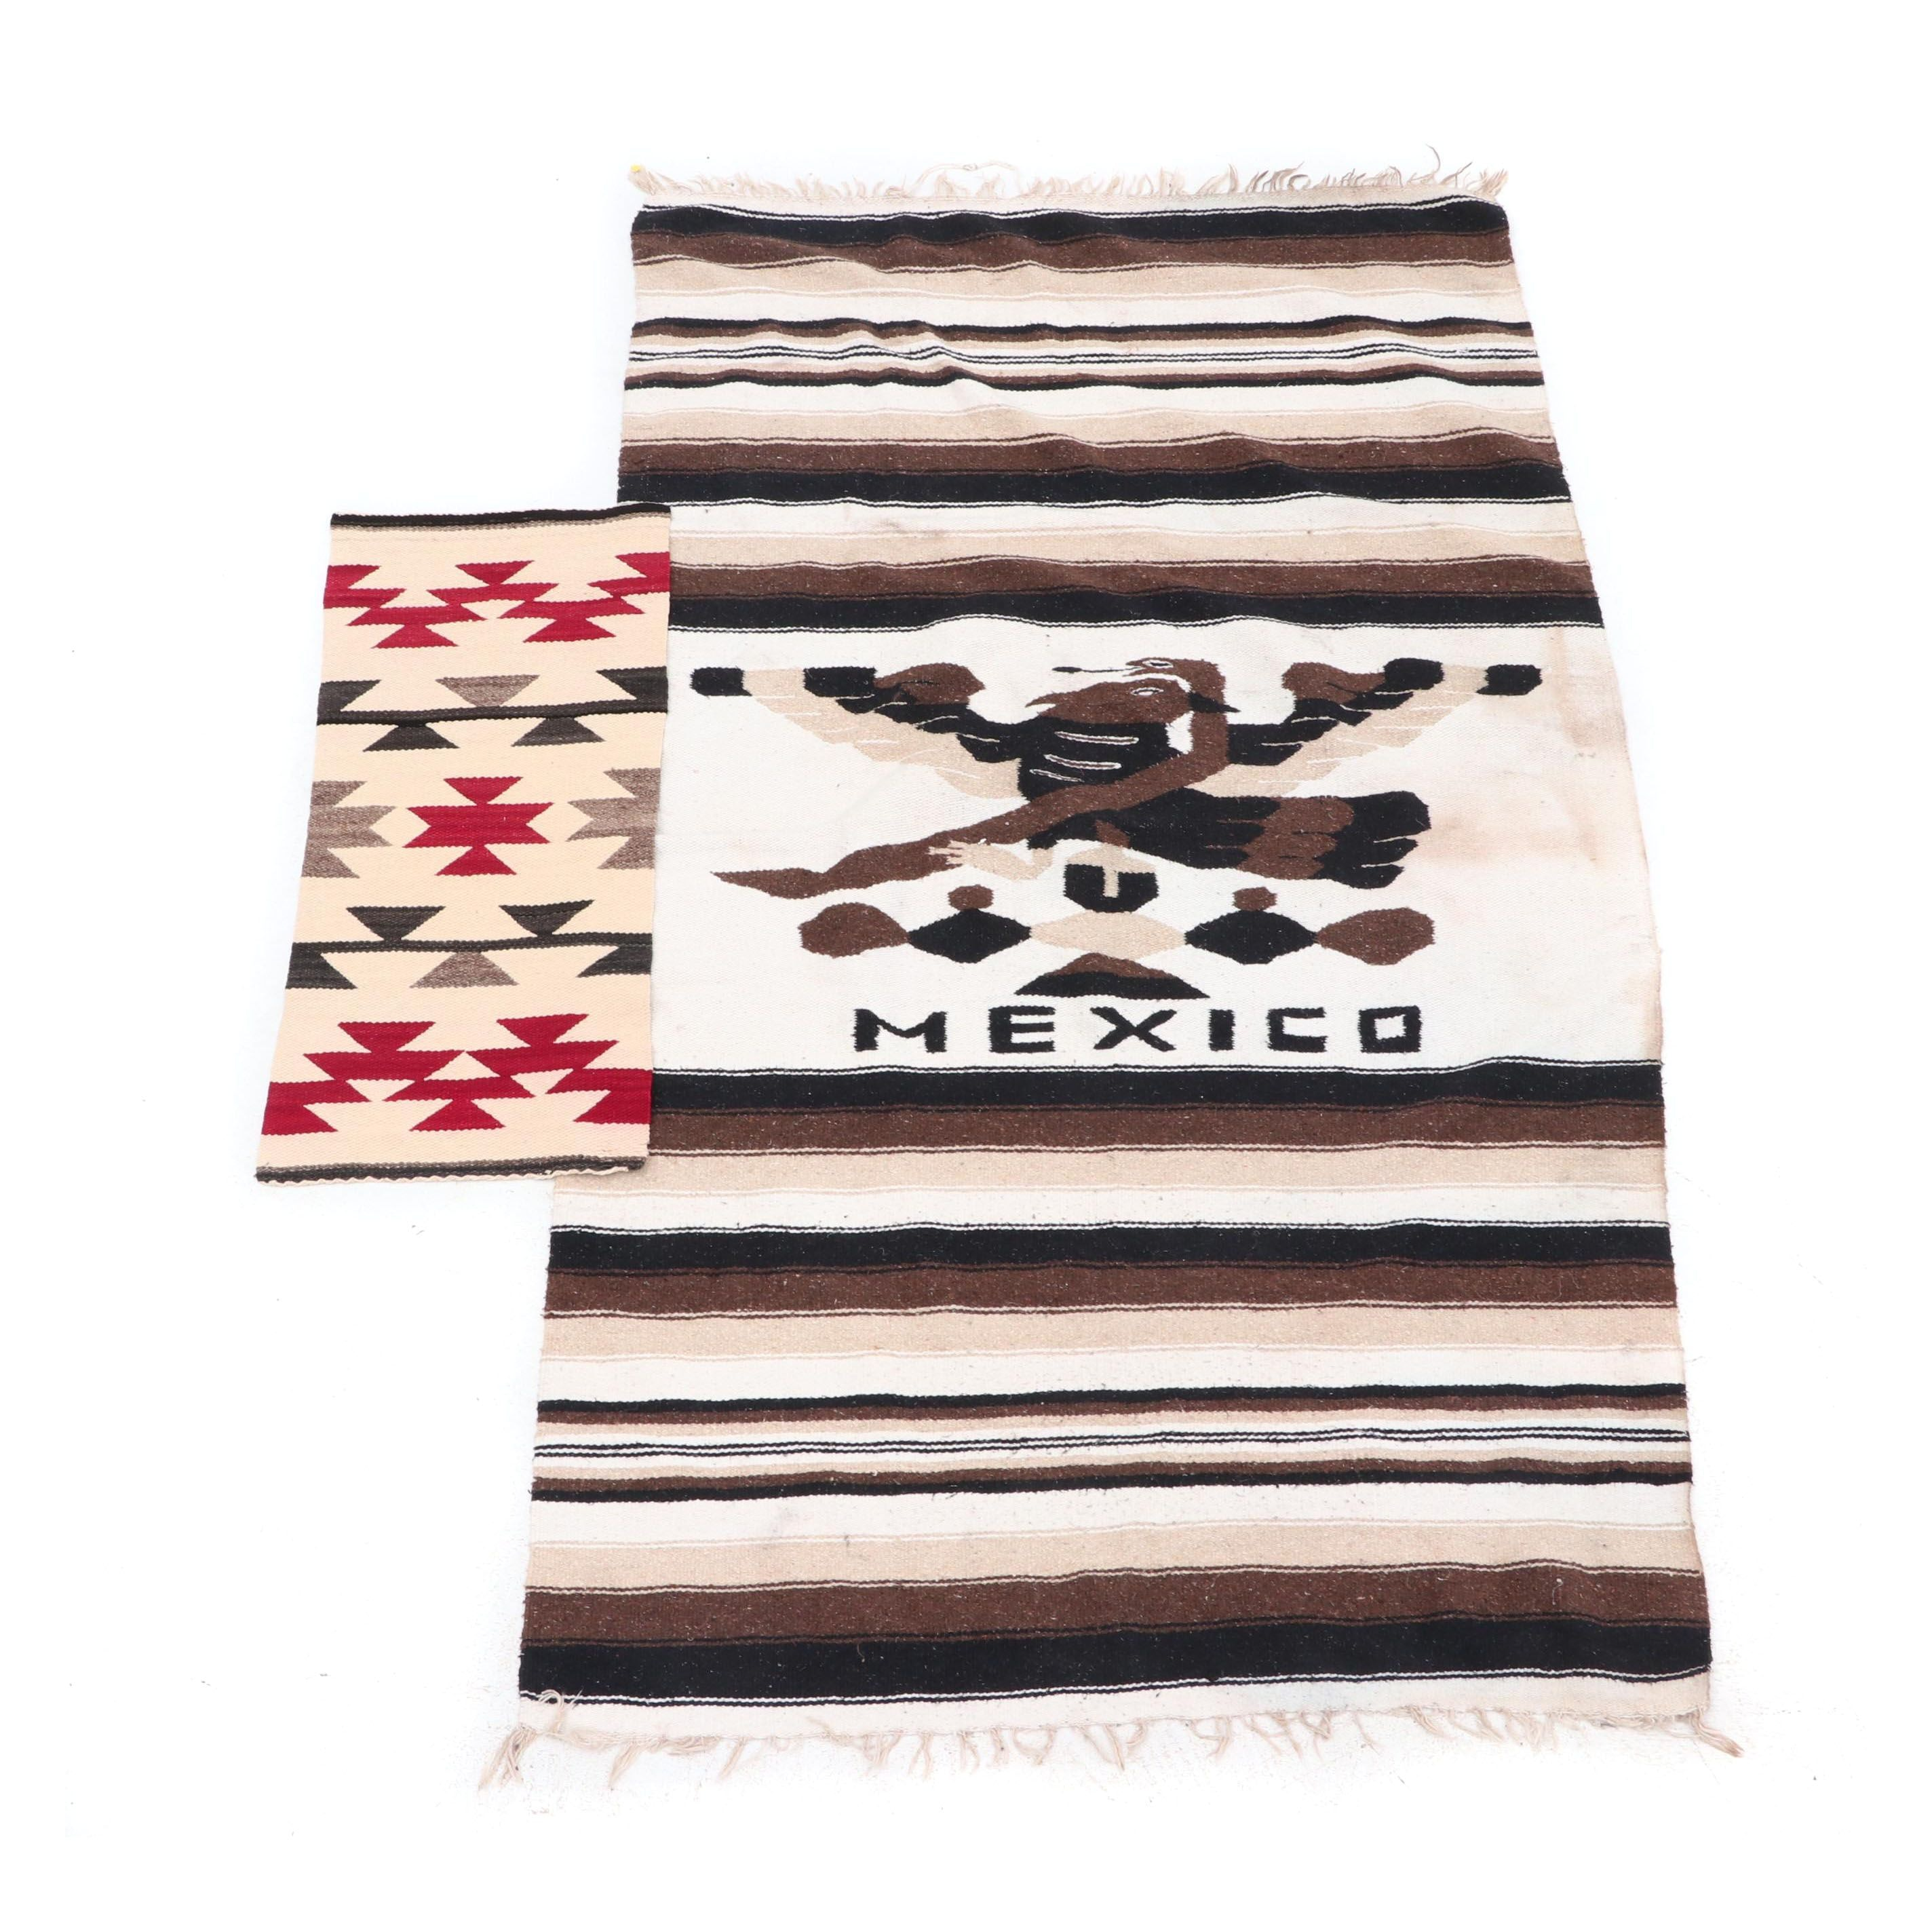 Handwoven Navajo Style Table-Runner and Mexican Rug